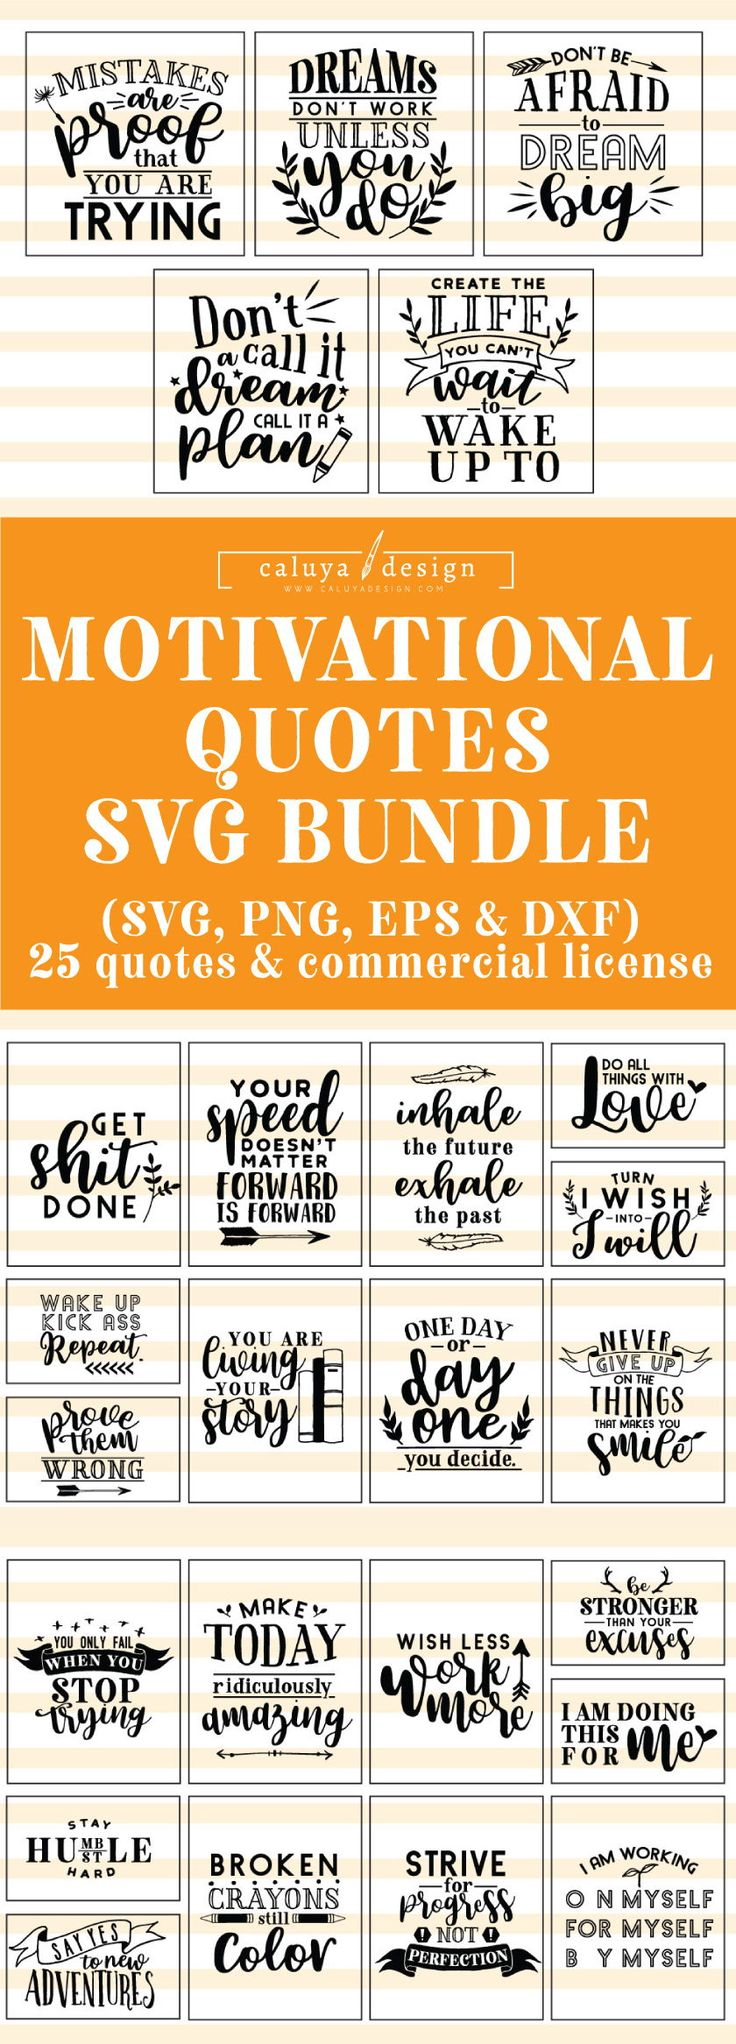 Motivational Quotes SVG Minimize File Bundle Deal | Minimize File for Cricut & Cameo Silhouette | Quote DXF Cu